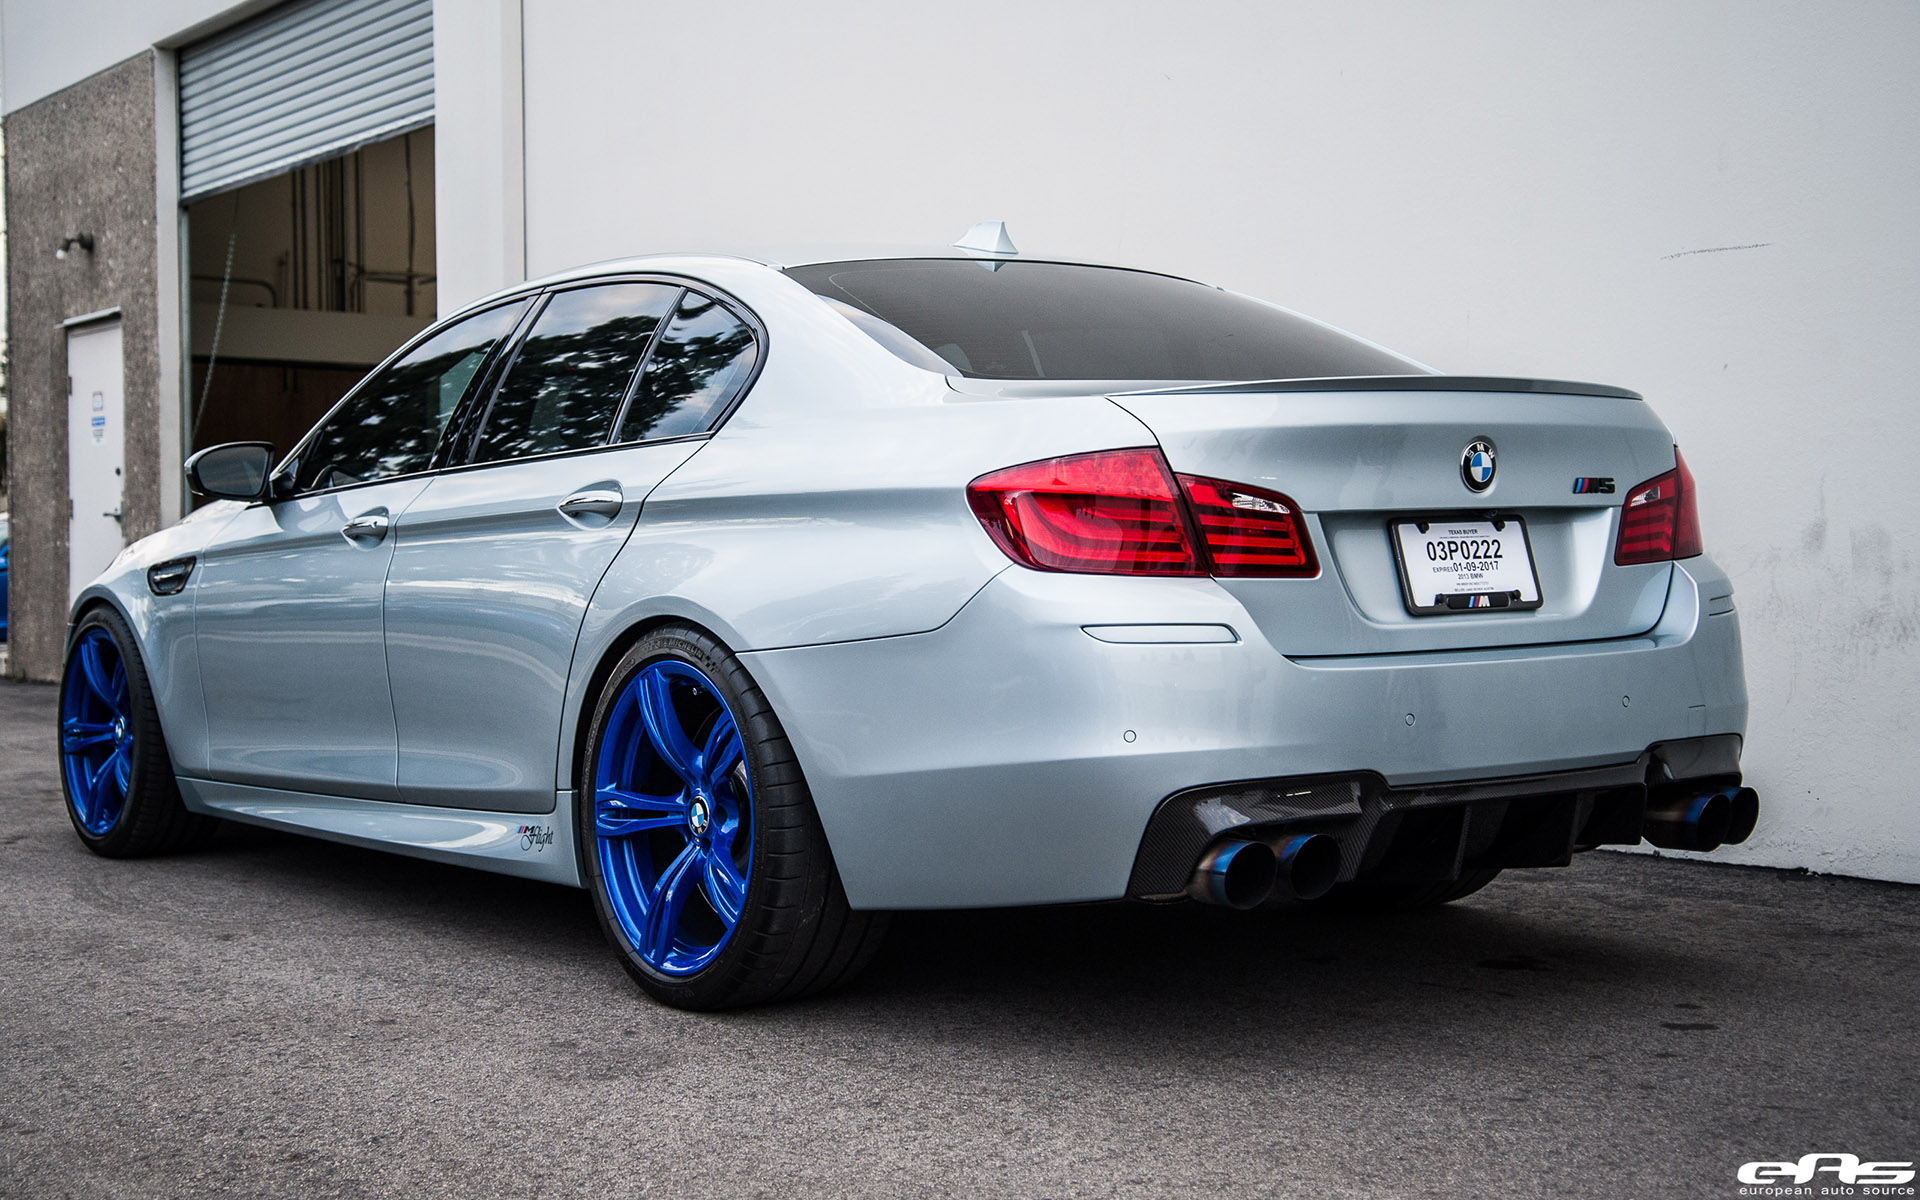 Silverstone Bmw M5 With Blue Wheels Amp A Custom Exhaust